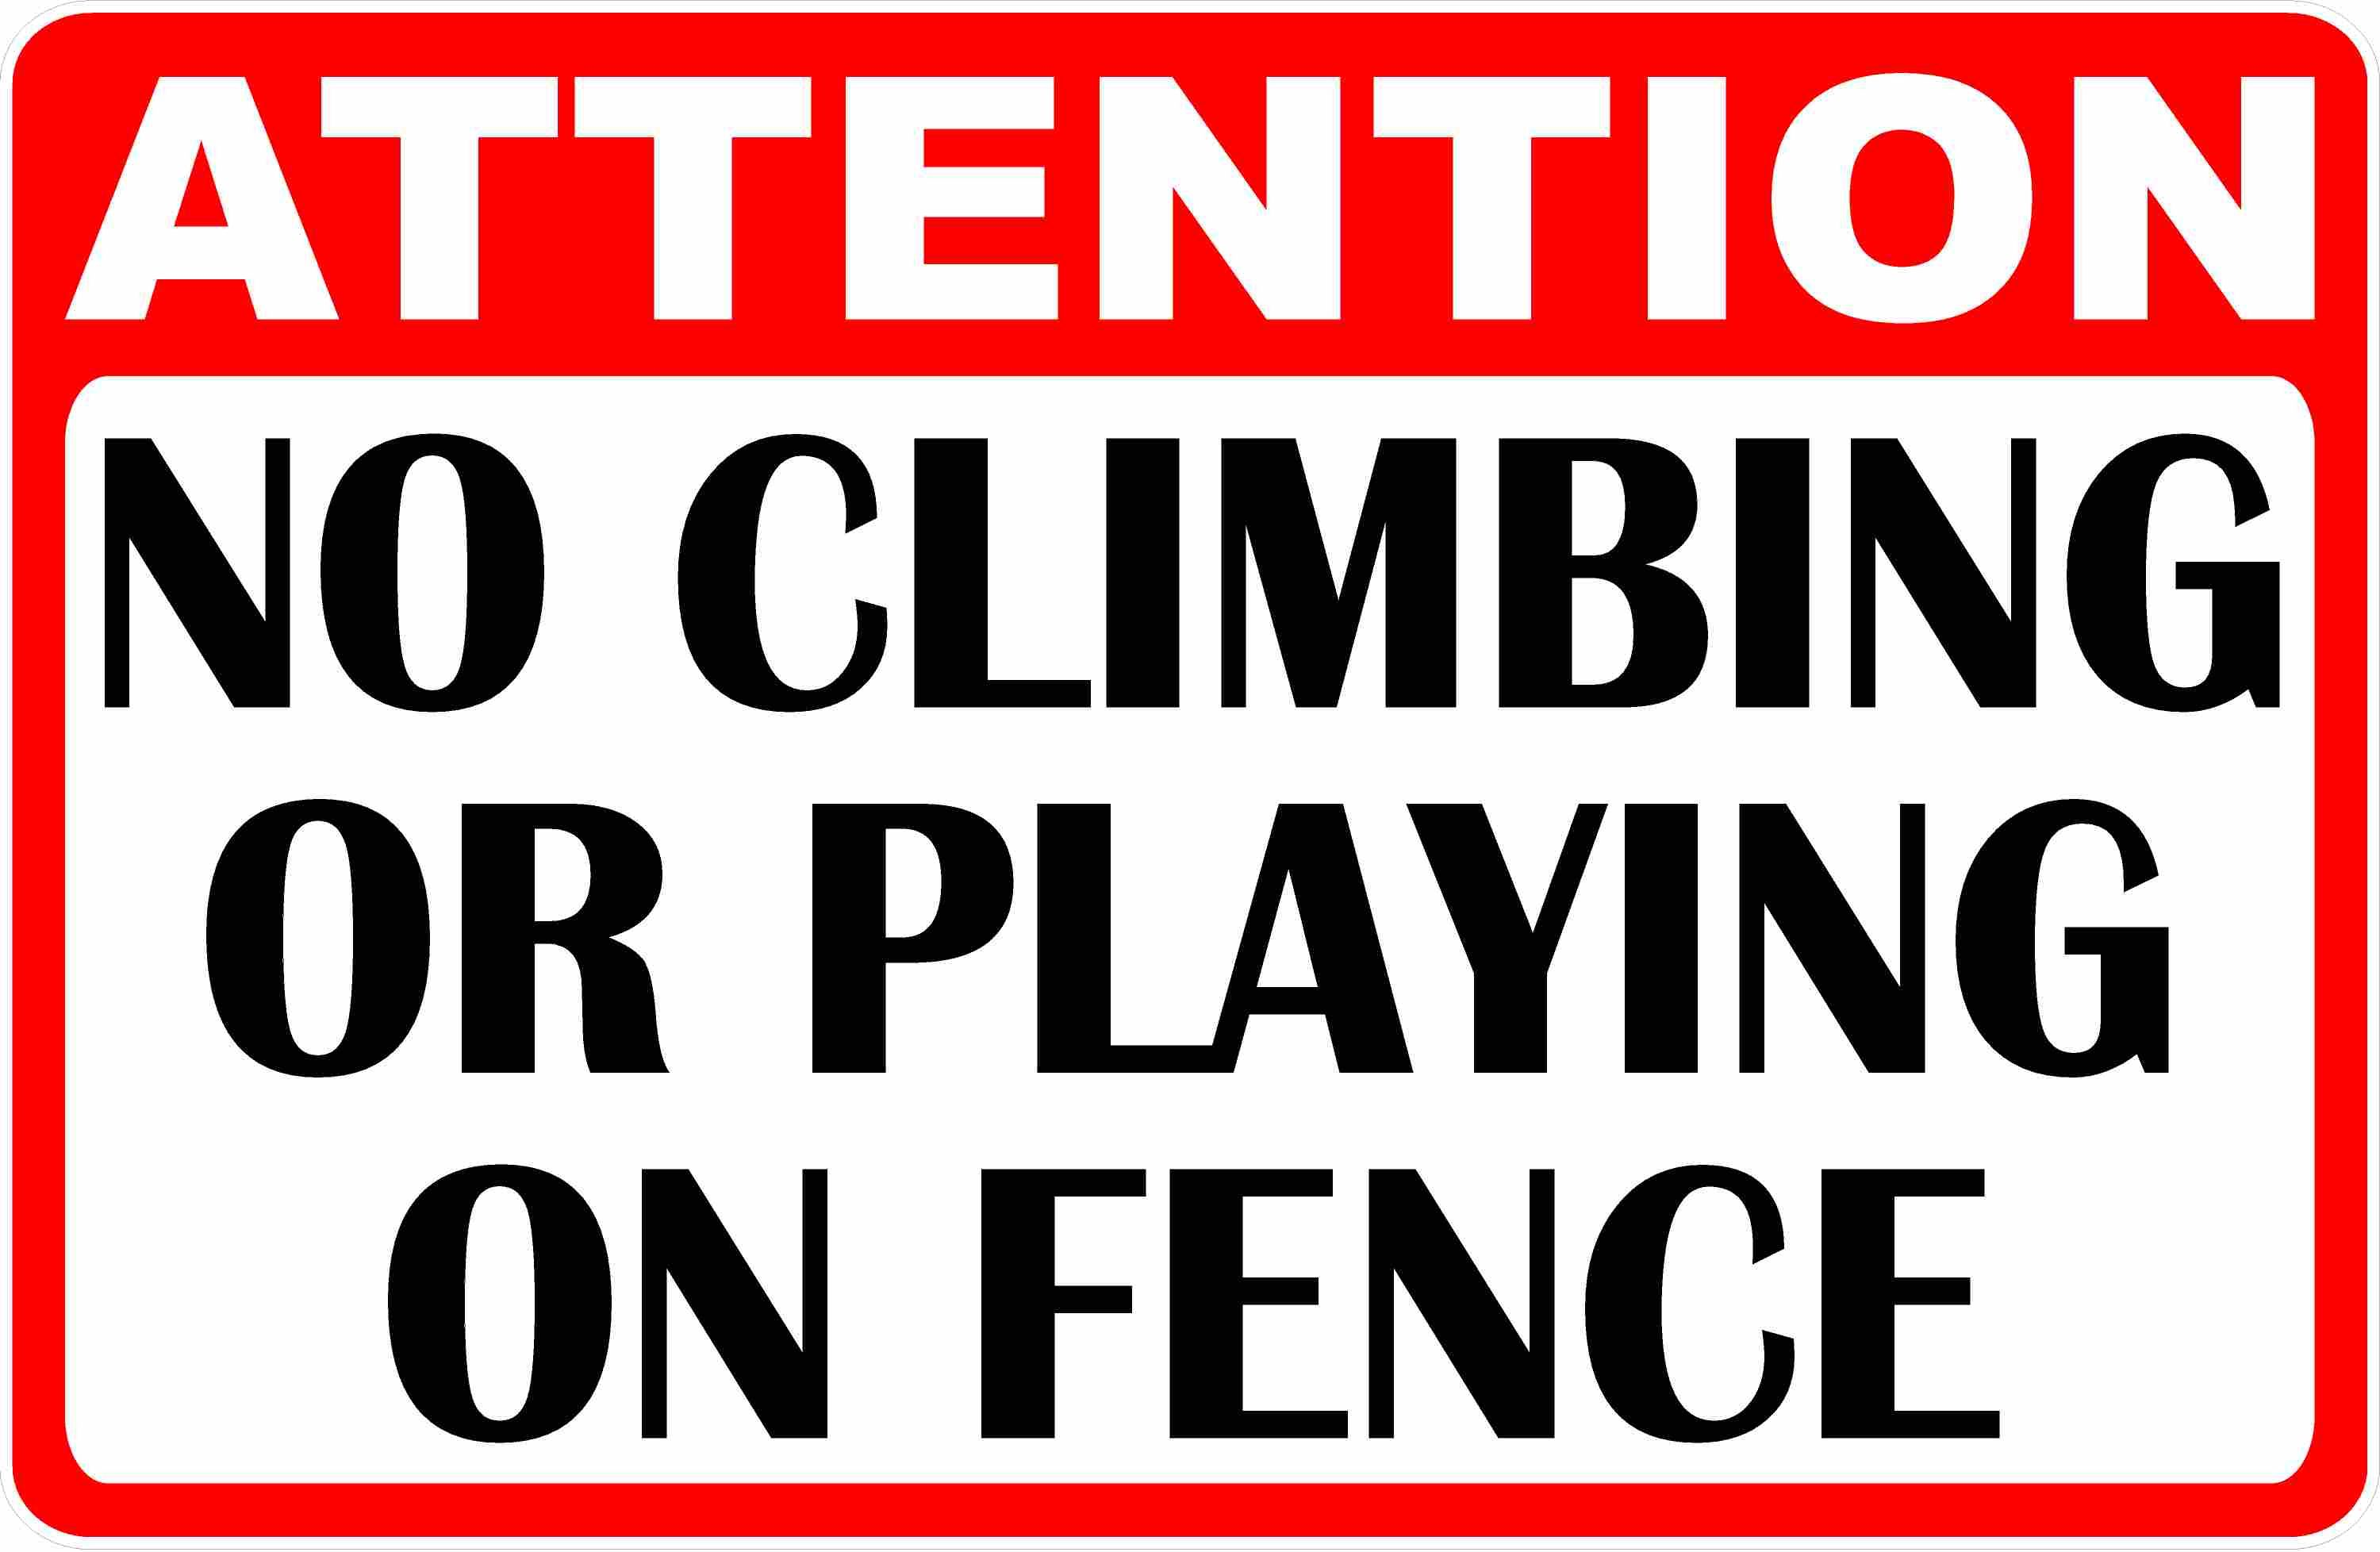 Attention No Climbing Or Playing On Fence Sign Fence Signs Senior Activities Signs